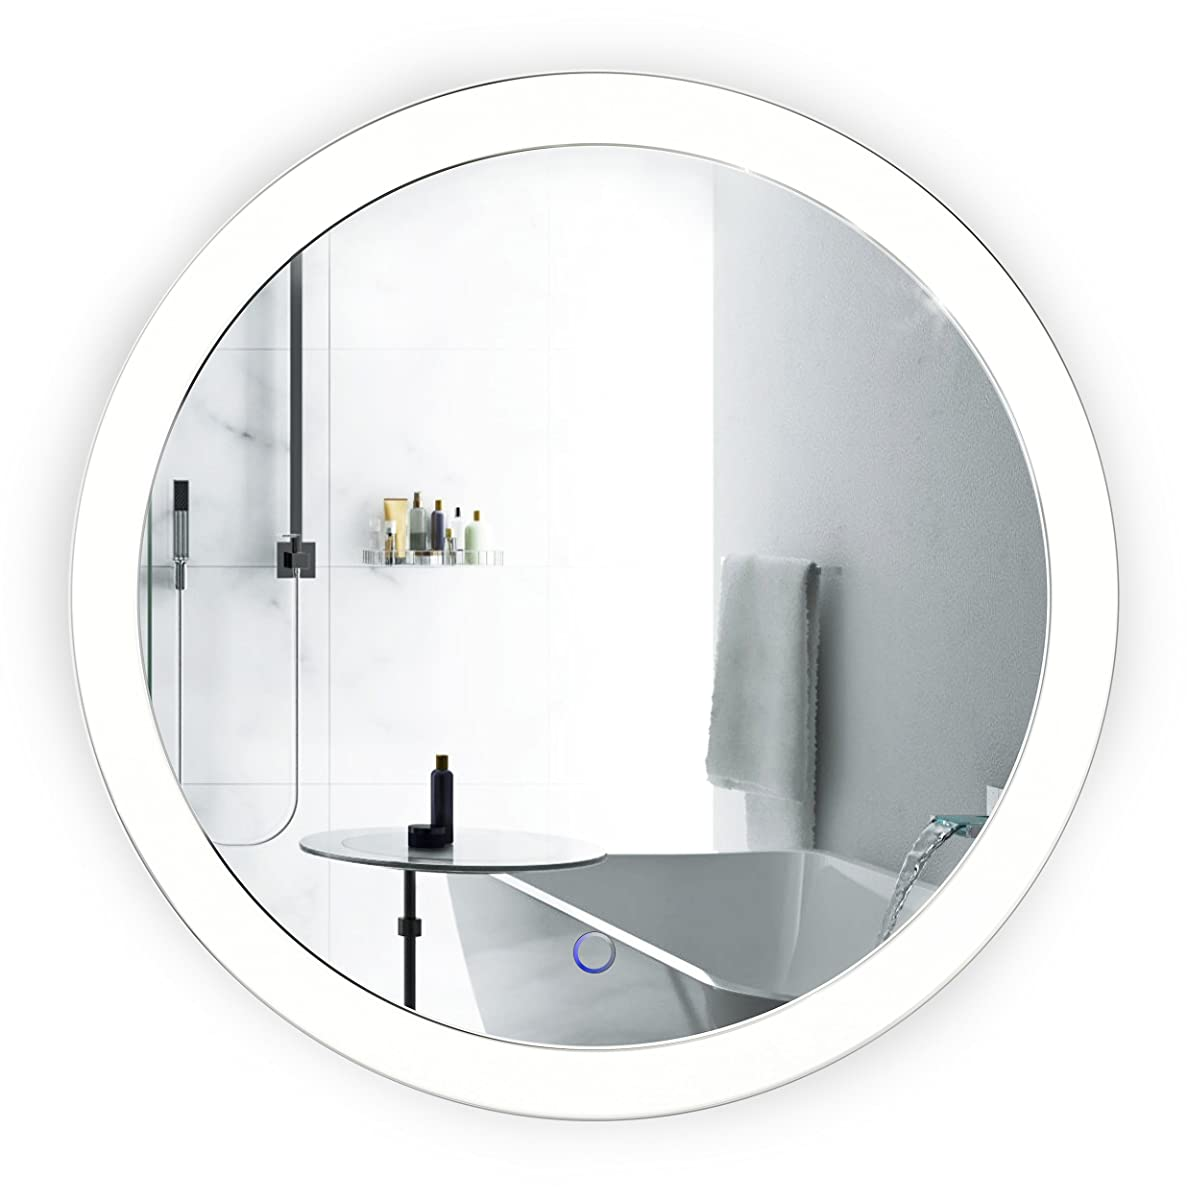 Krugg LED Bathroom Round Mirror 22 Inch Diameter | Lighted Vanity Mirror Dimmer & Defogger | Silver Backed Glass | |